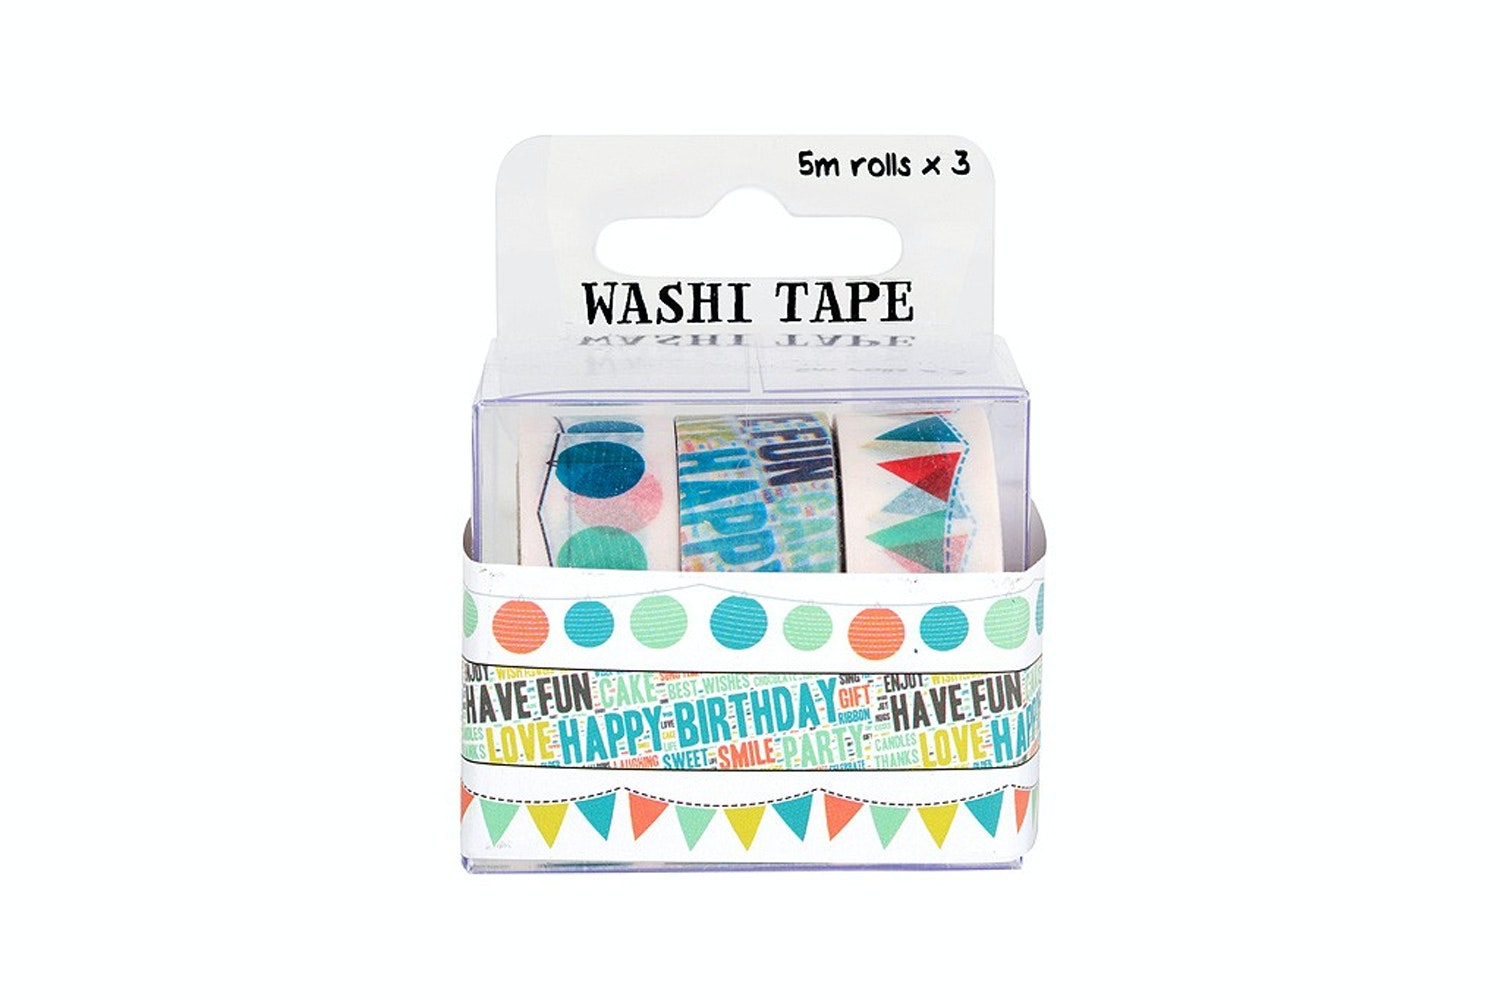 FujiFilm Instax Washi Tape 3 Roll | Party